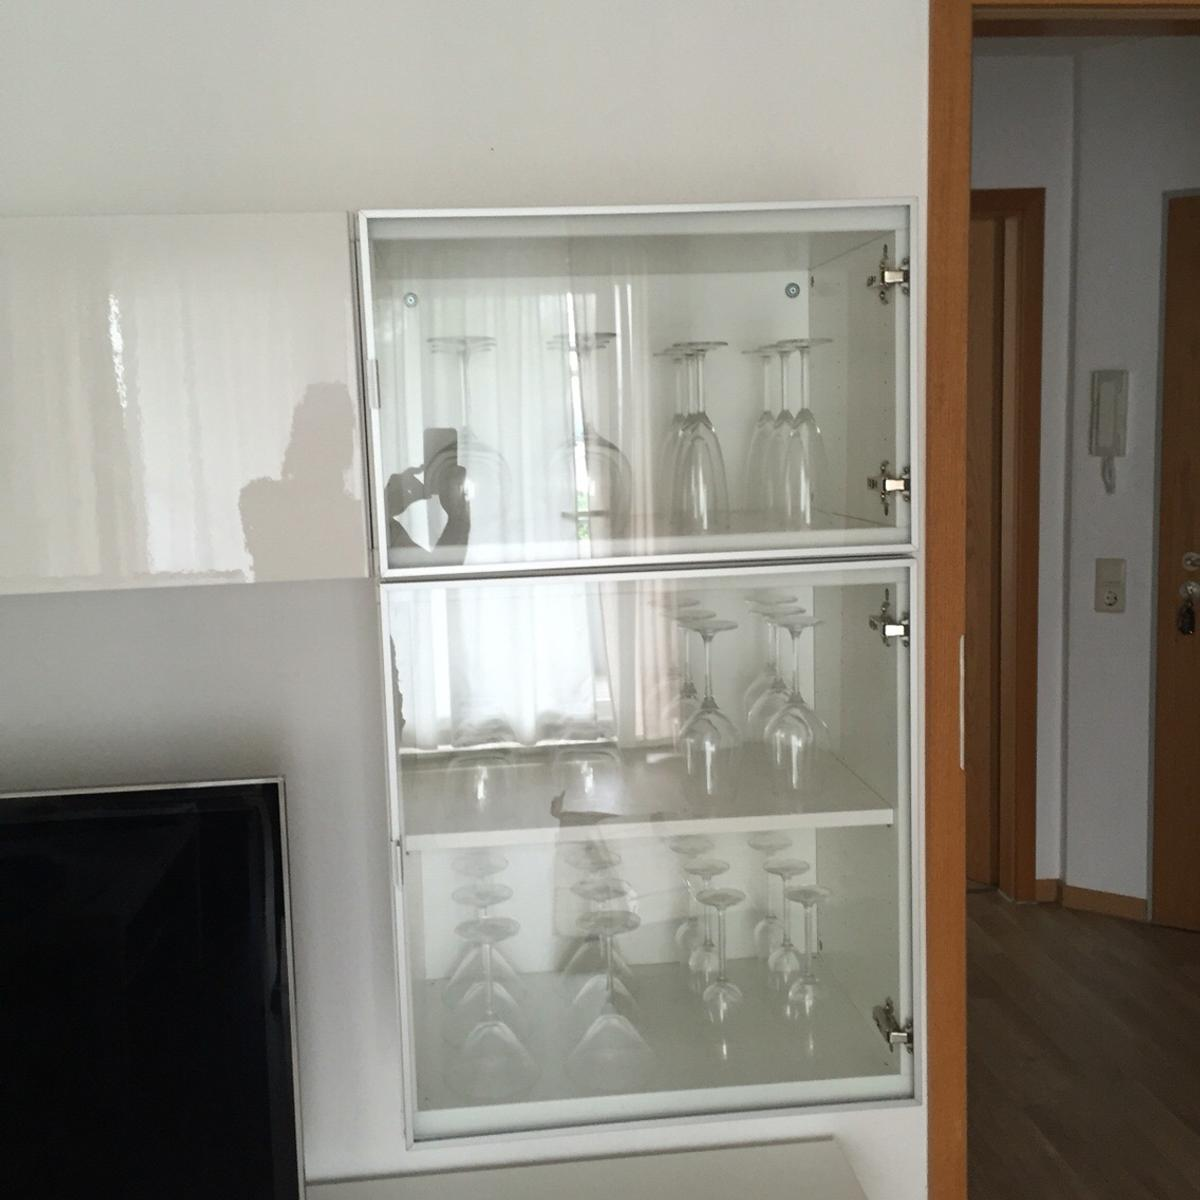 Sale Ikea Shpock Fellbach In For €330 70736 00 Besta Tofta SVpqUzM